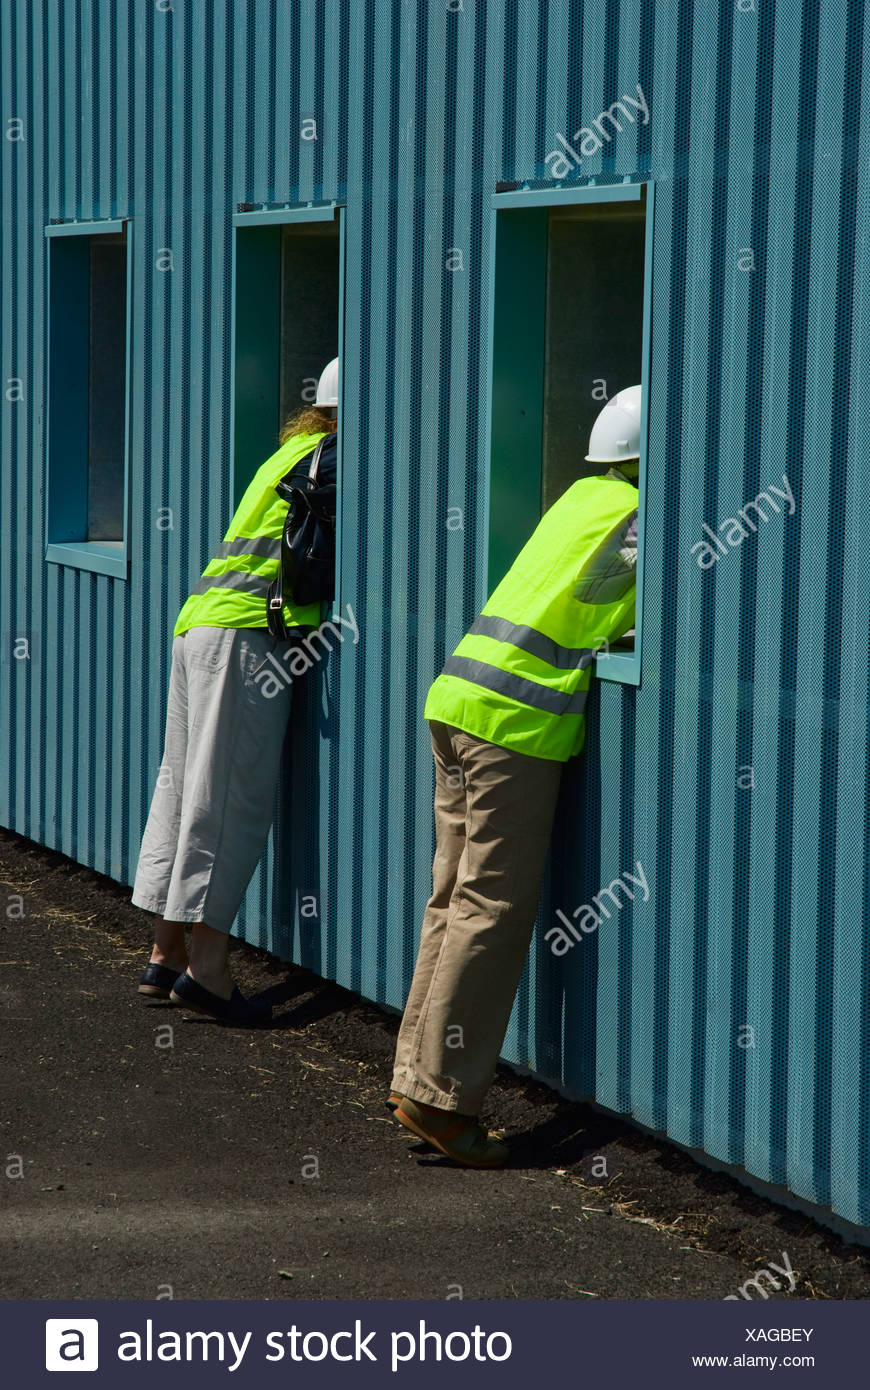 Visitors wearing hardhats and safety vests looking into the sanitation hall at the Sondermuelldeponie or hazardous waste deposi - Stock Image